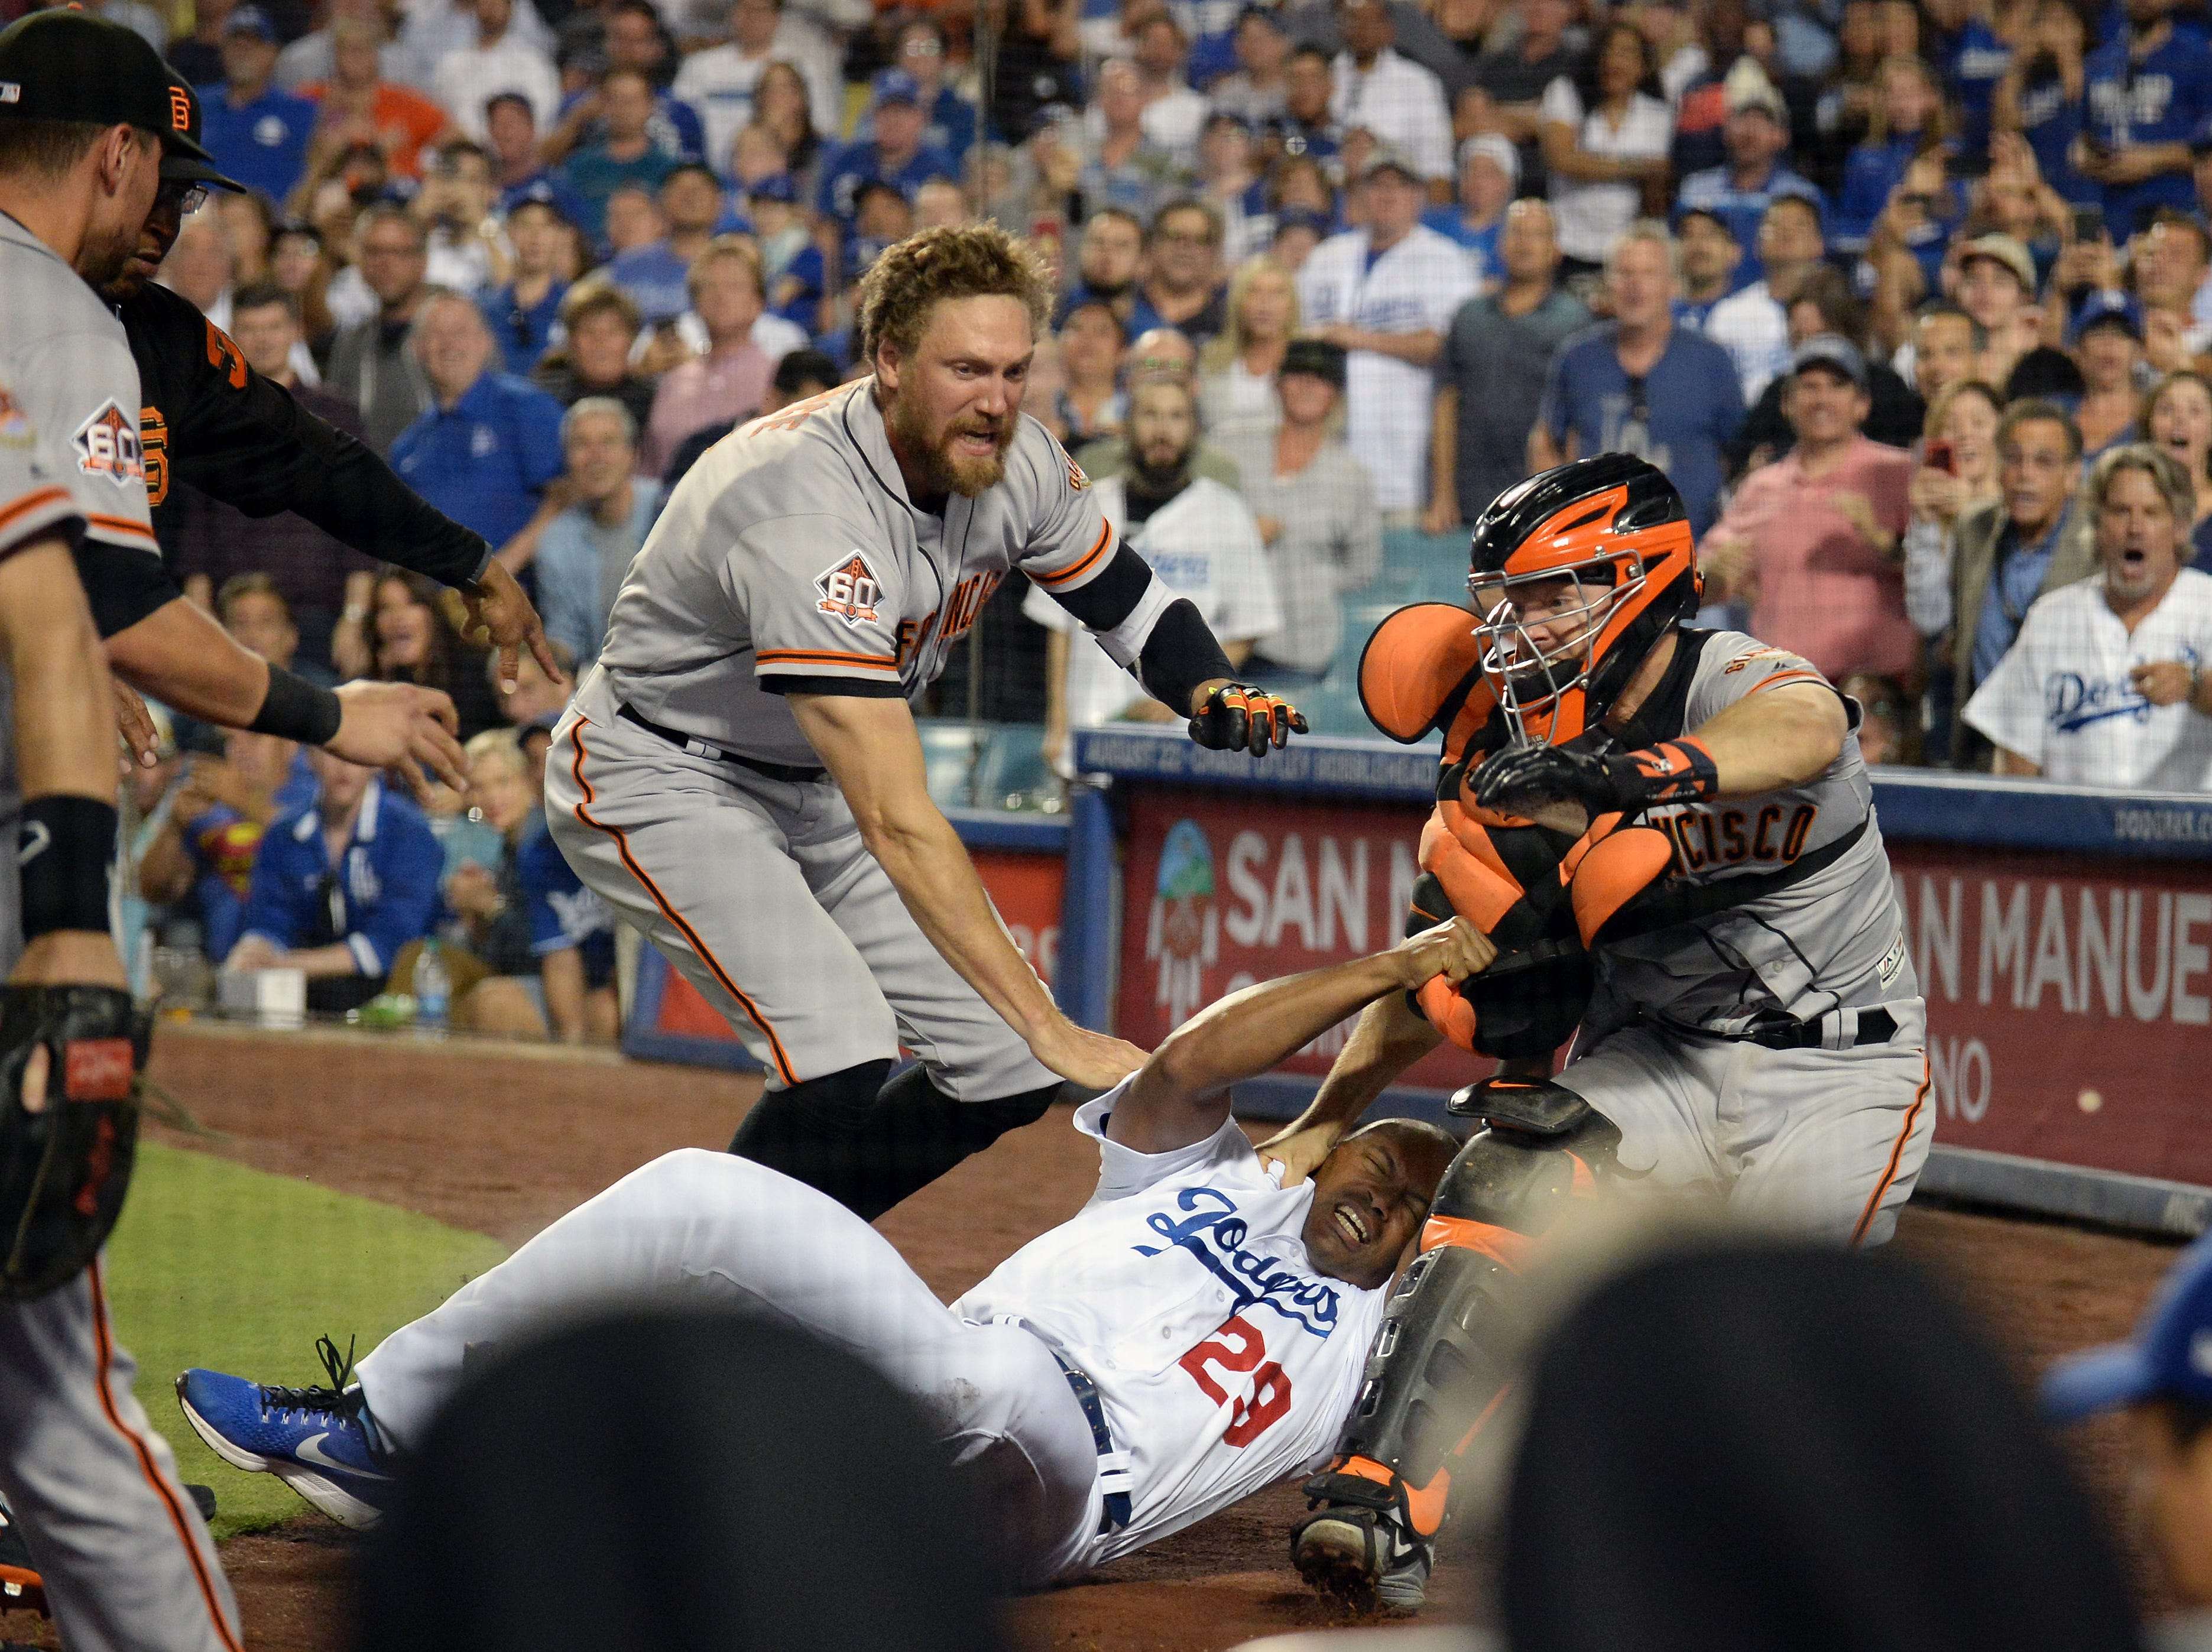 Aug. 14: Los Angeles Dodgers first base coach George Lombard (29) is brought down by San Francisco Giants catcher Nick Hundley (5) and right fielder Hunter Pence (8) during a seventh-inning brawl at Dodger Stadium.